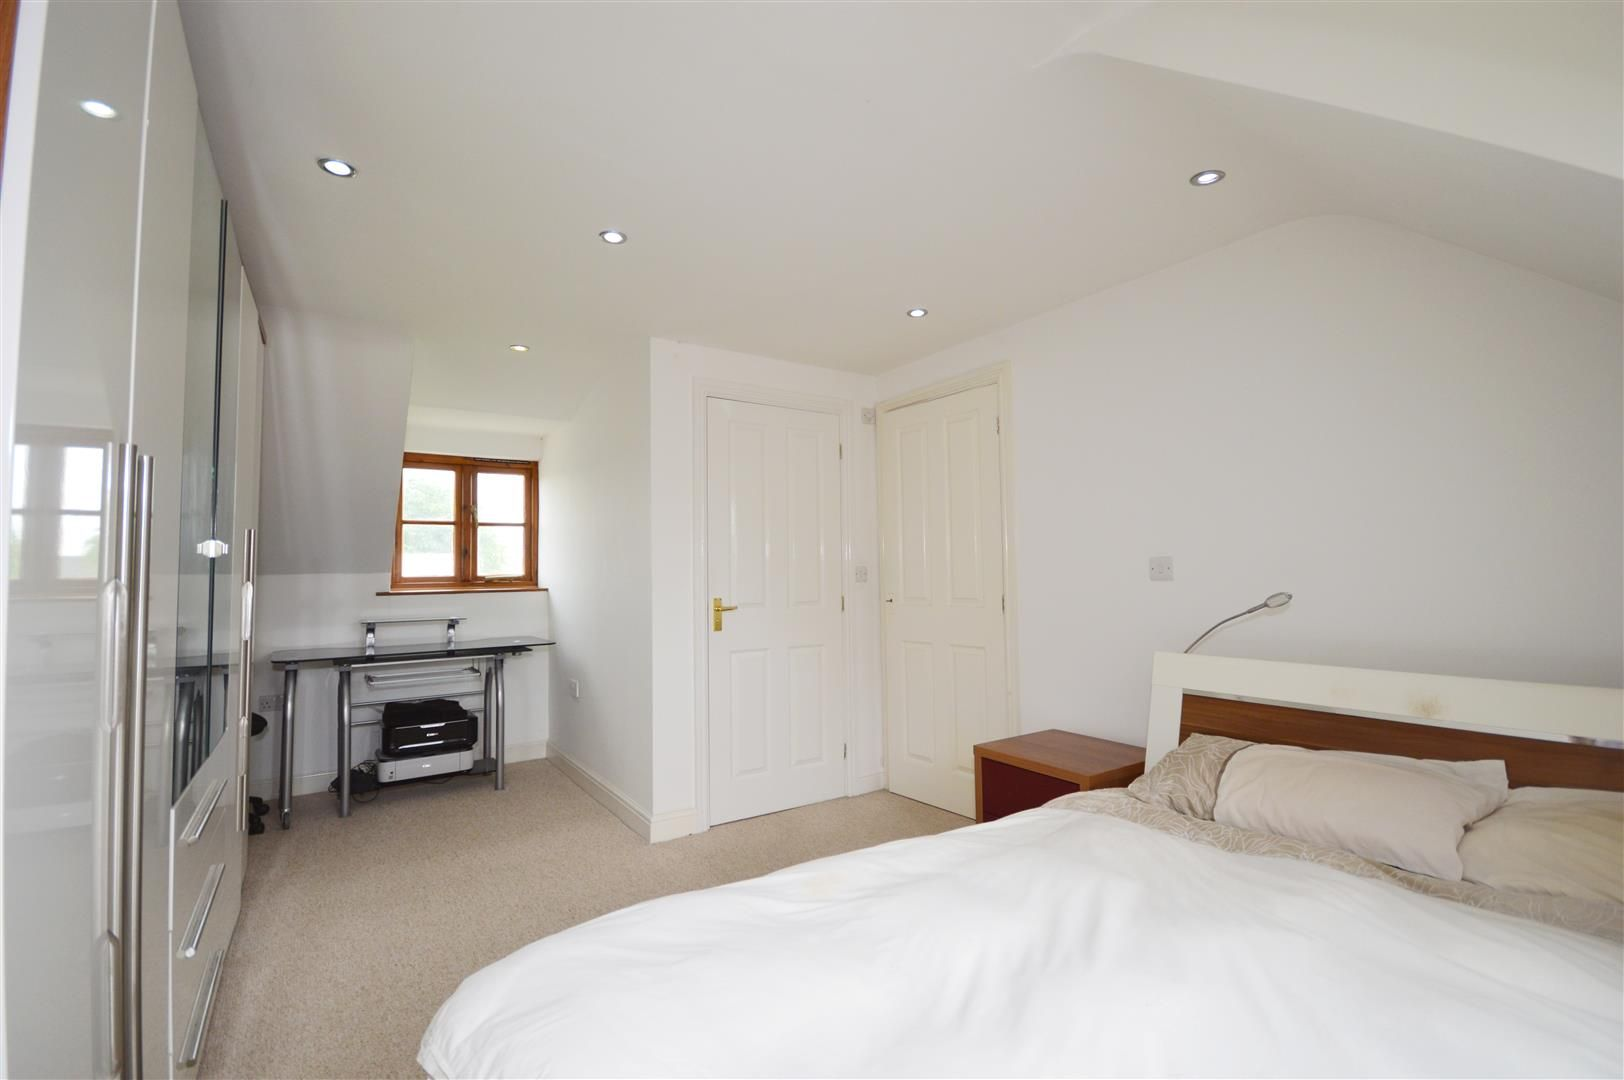 3 bed semi-detached for sale in Staunton-On-Wye  - Property Image 6